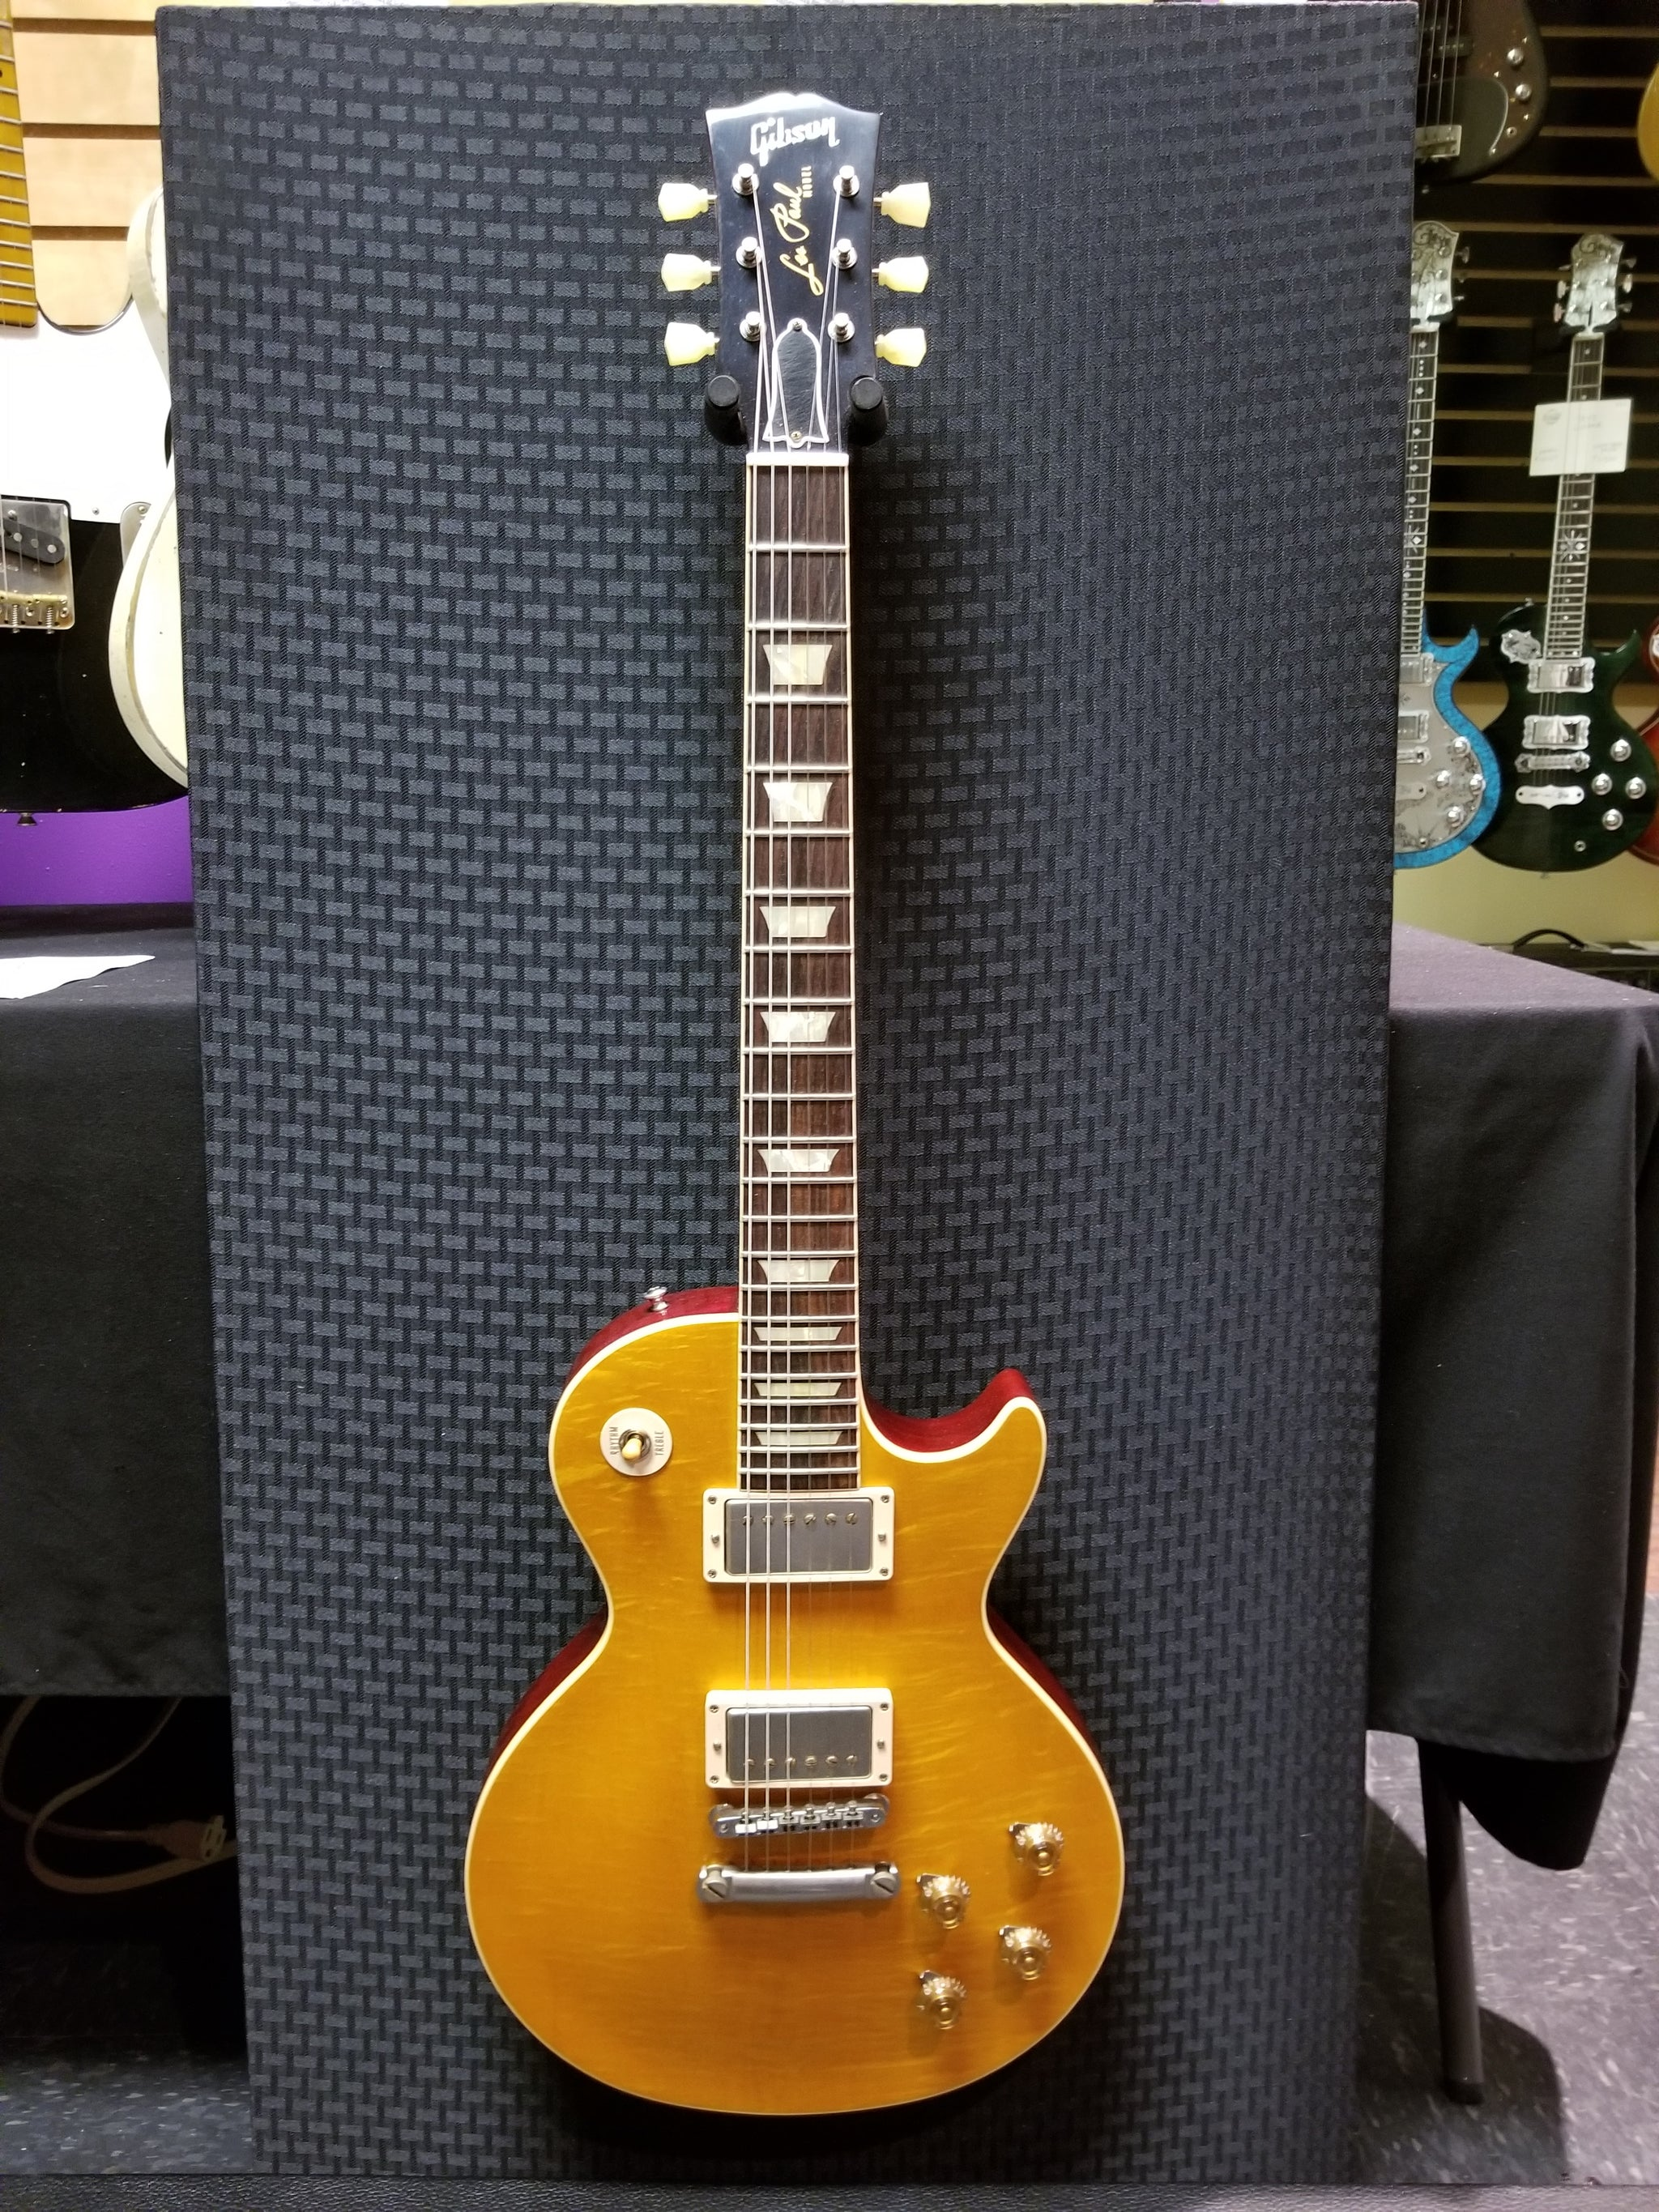 ****SOLD**** Gibson Les Paul R8